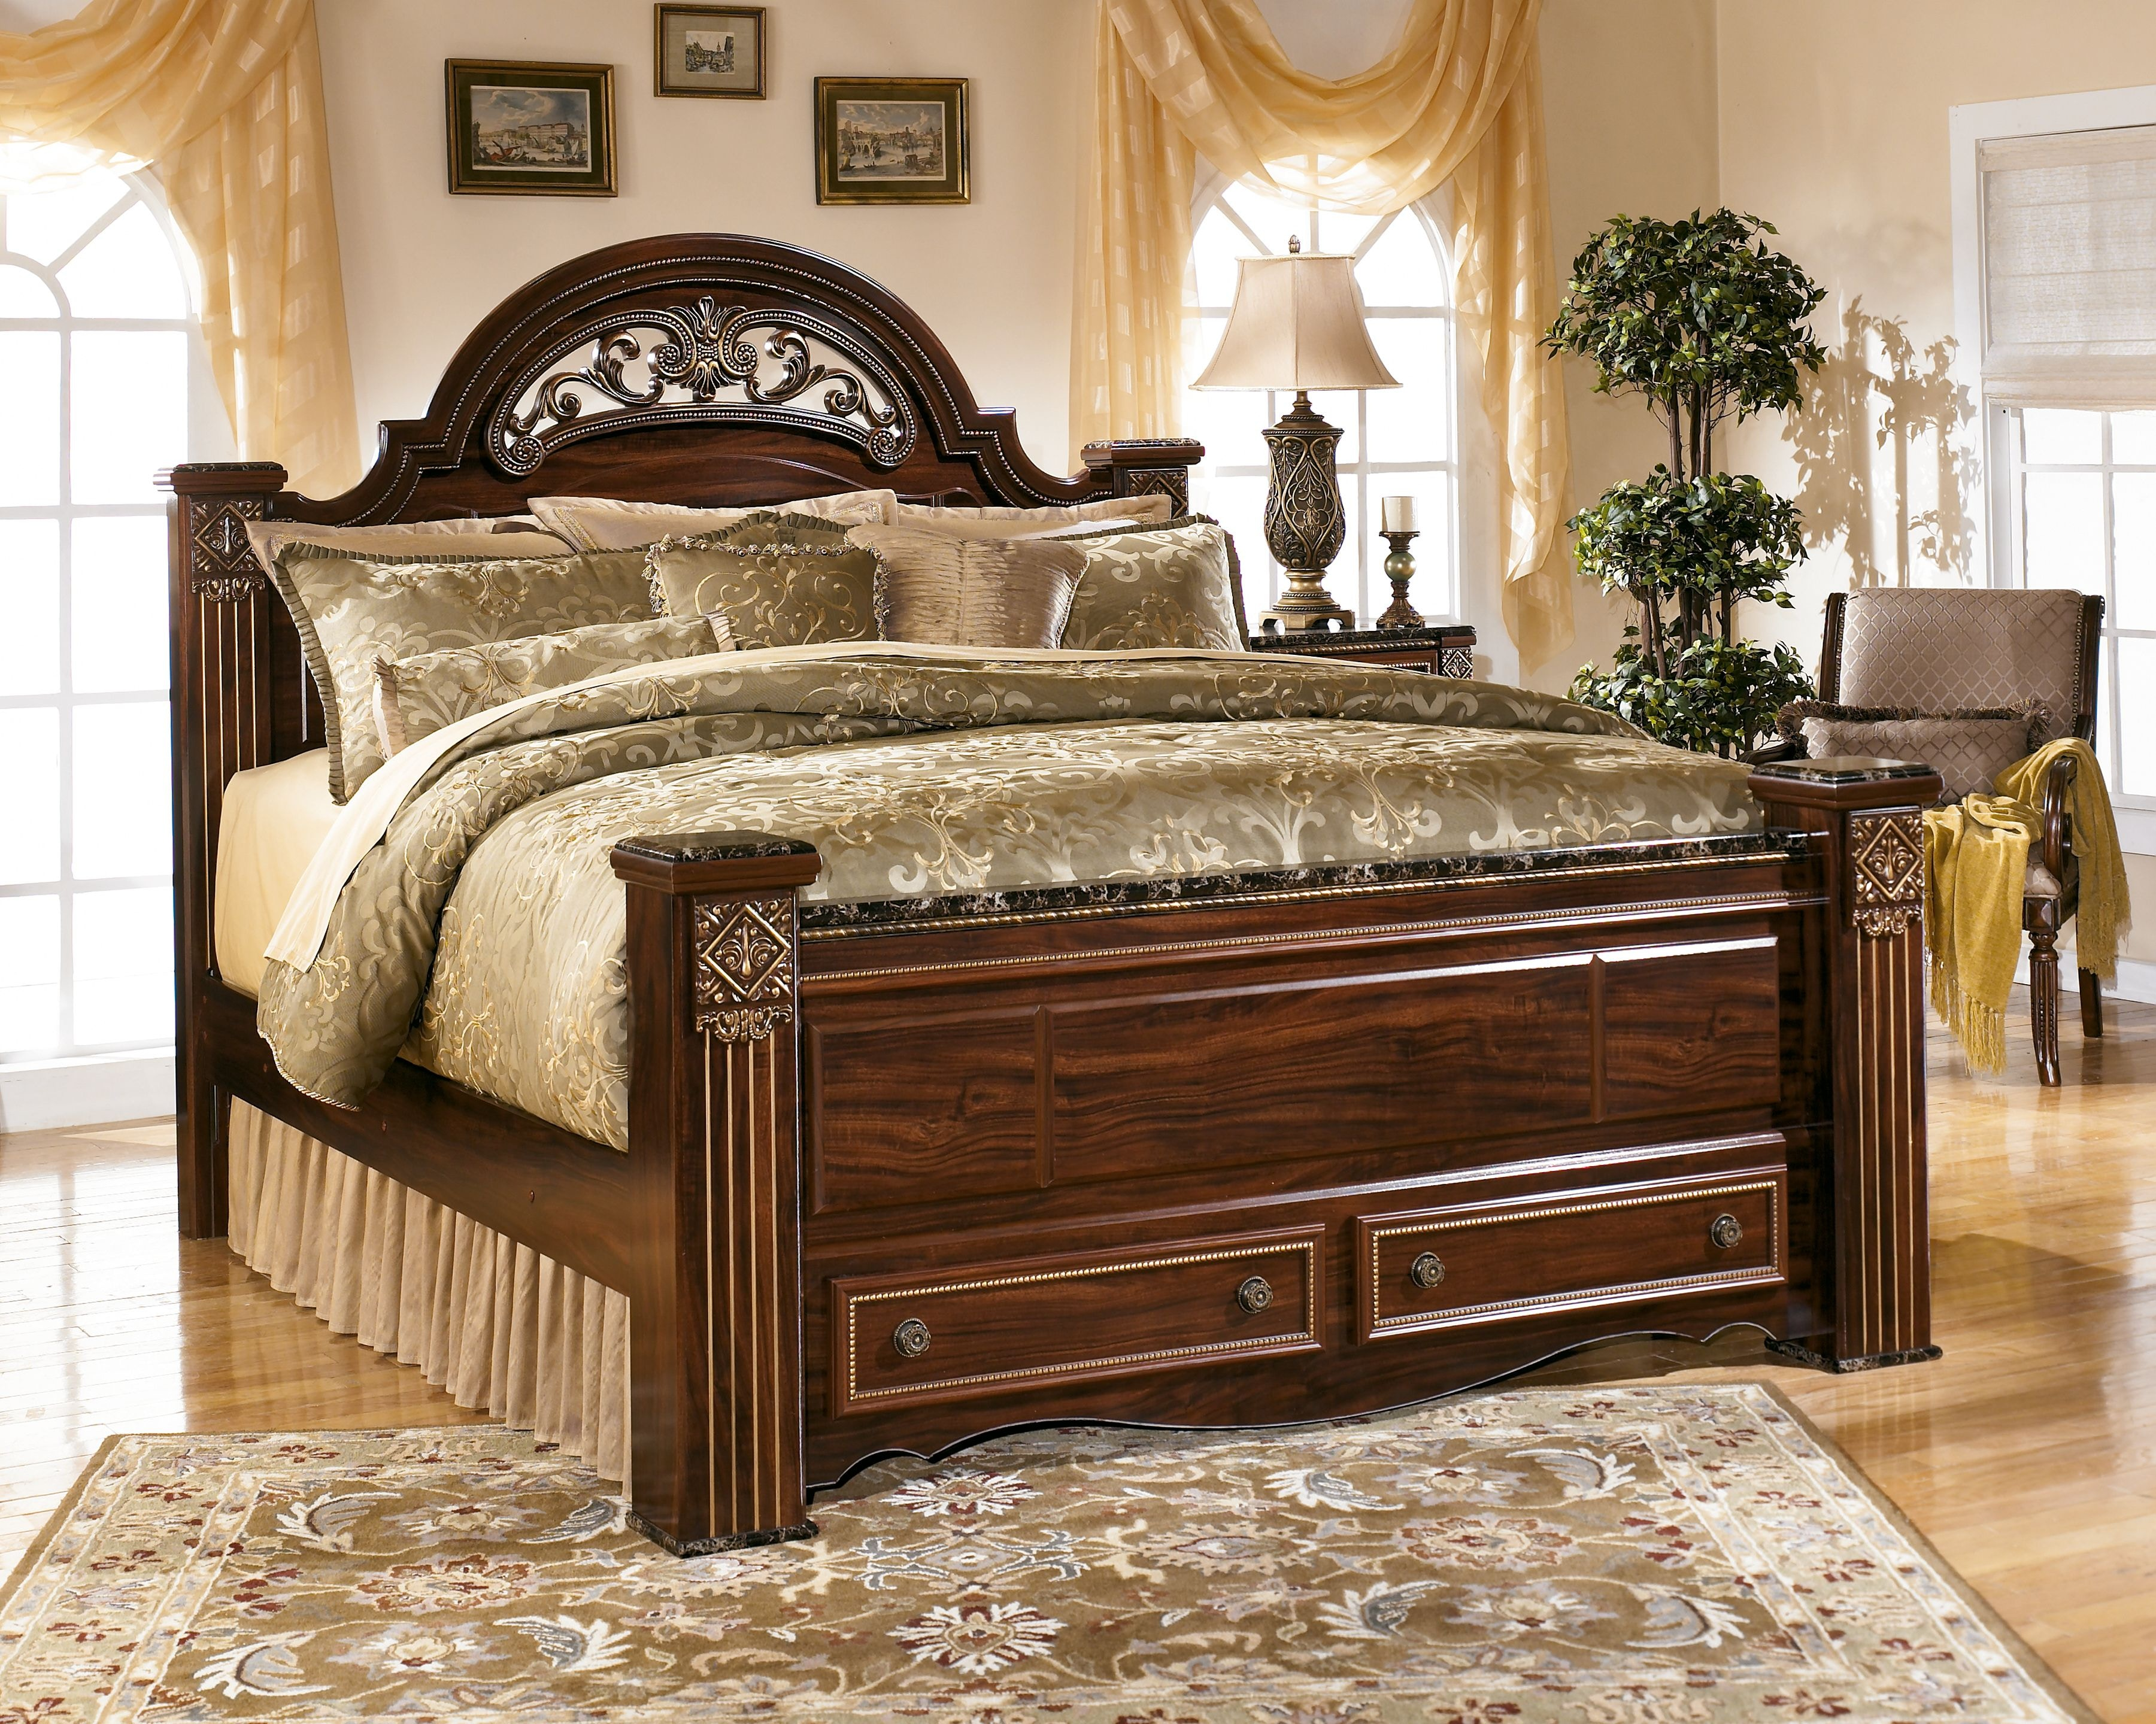 Bedroom Furniture Ga bedroom furniture - tate furniture - phenix city, al and columbus, ga